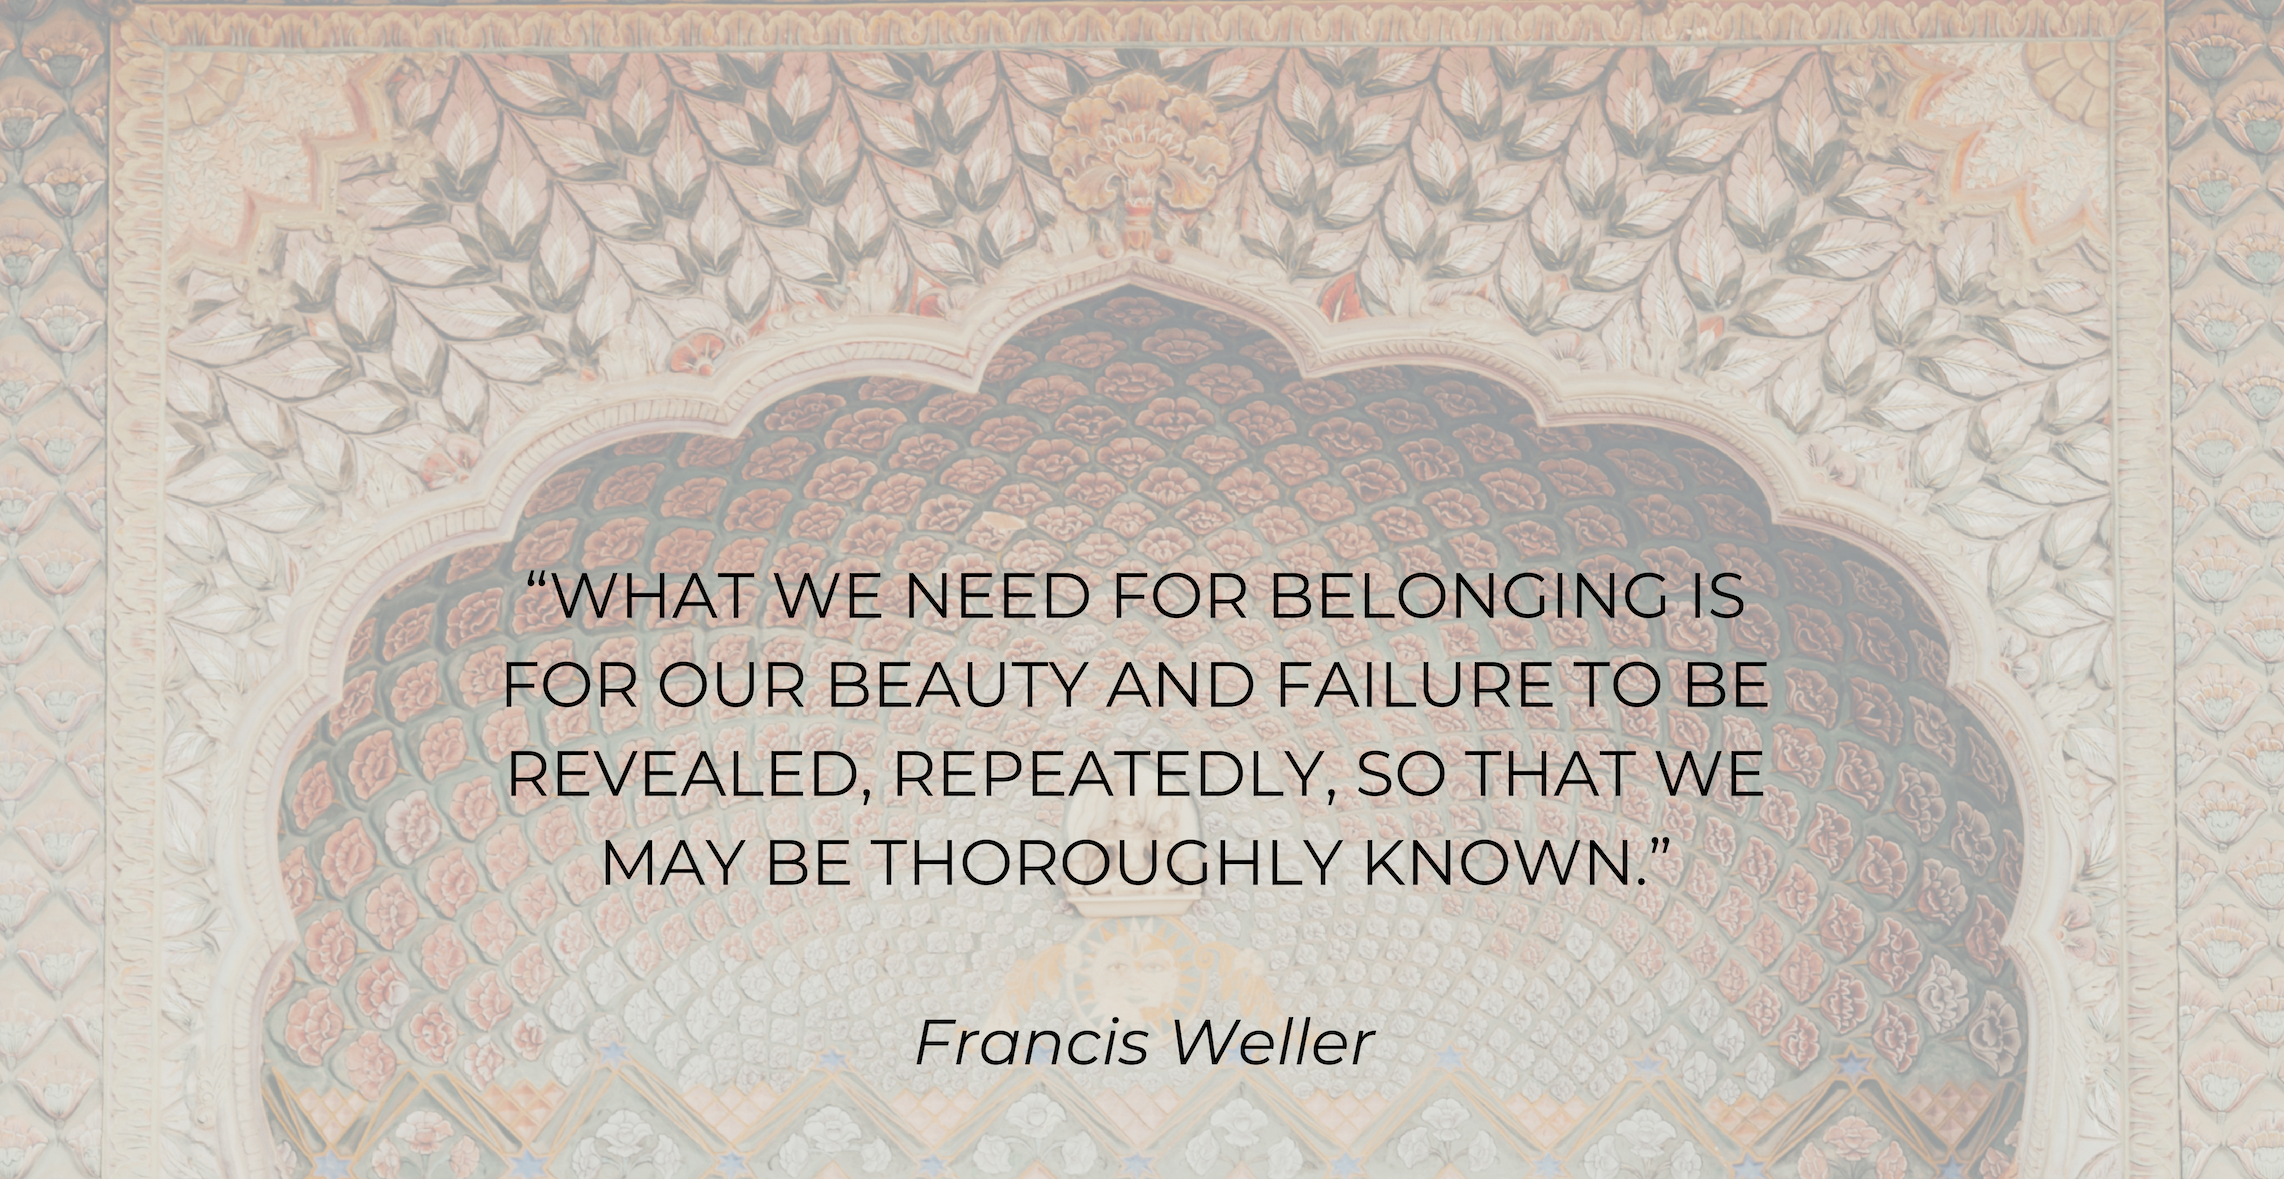 """""""What we need for belonging is for our beauty and failure to be revealed, repeatedly, so that we may be thoroughly known."""" - Francis Weller.png"""